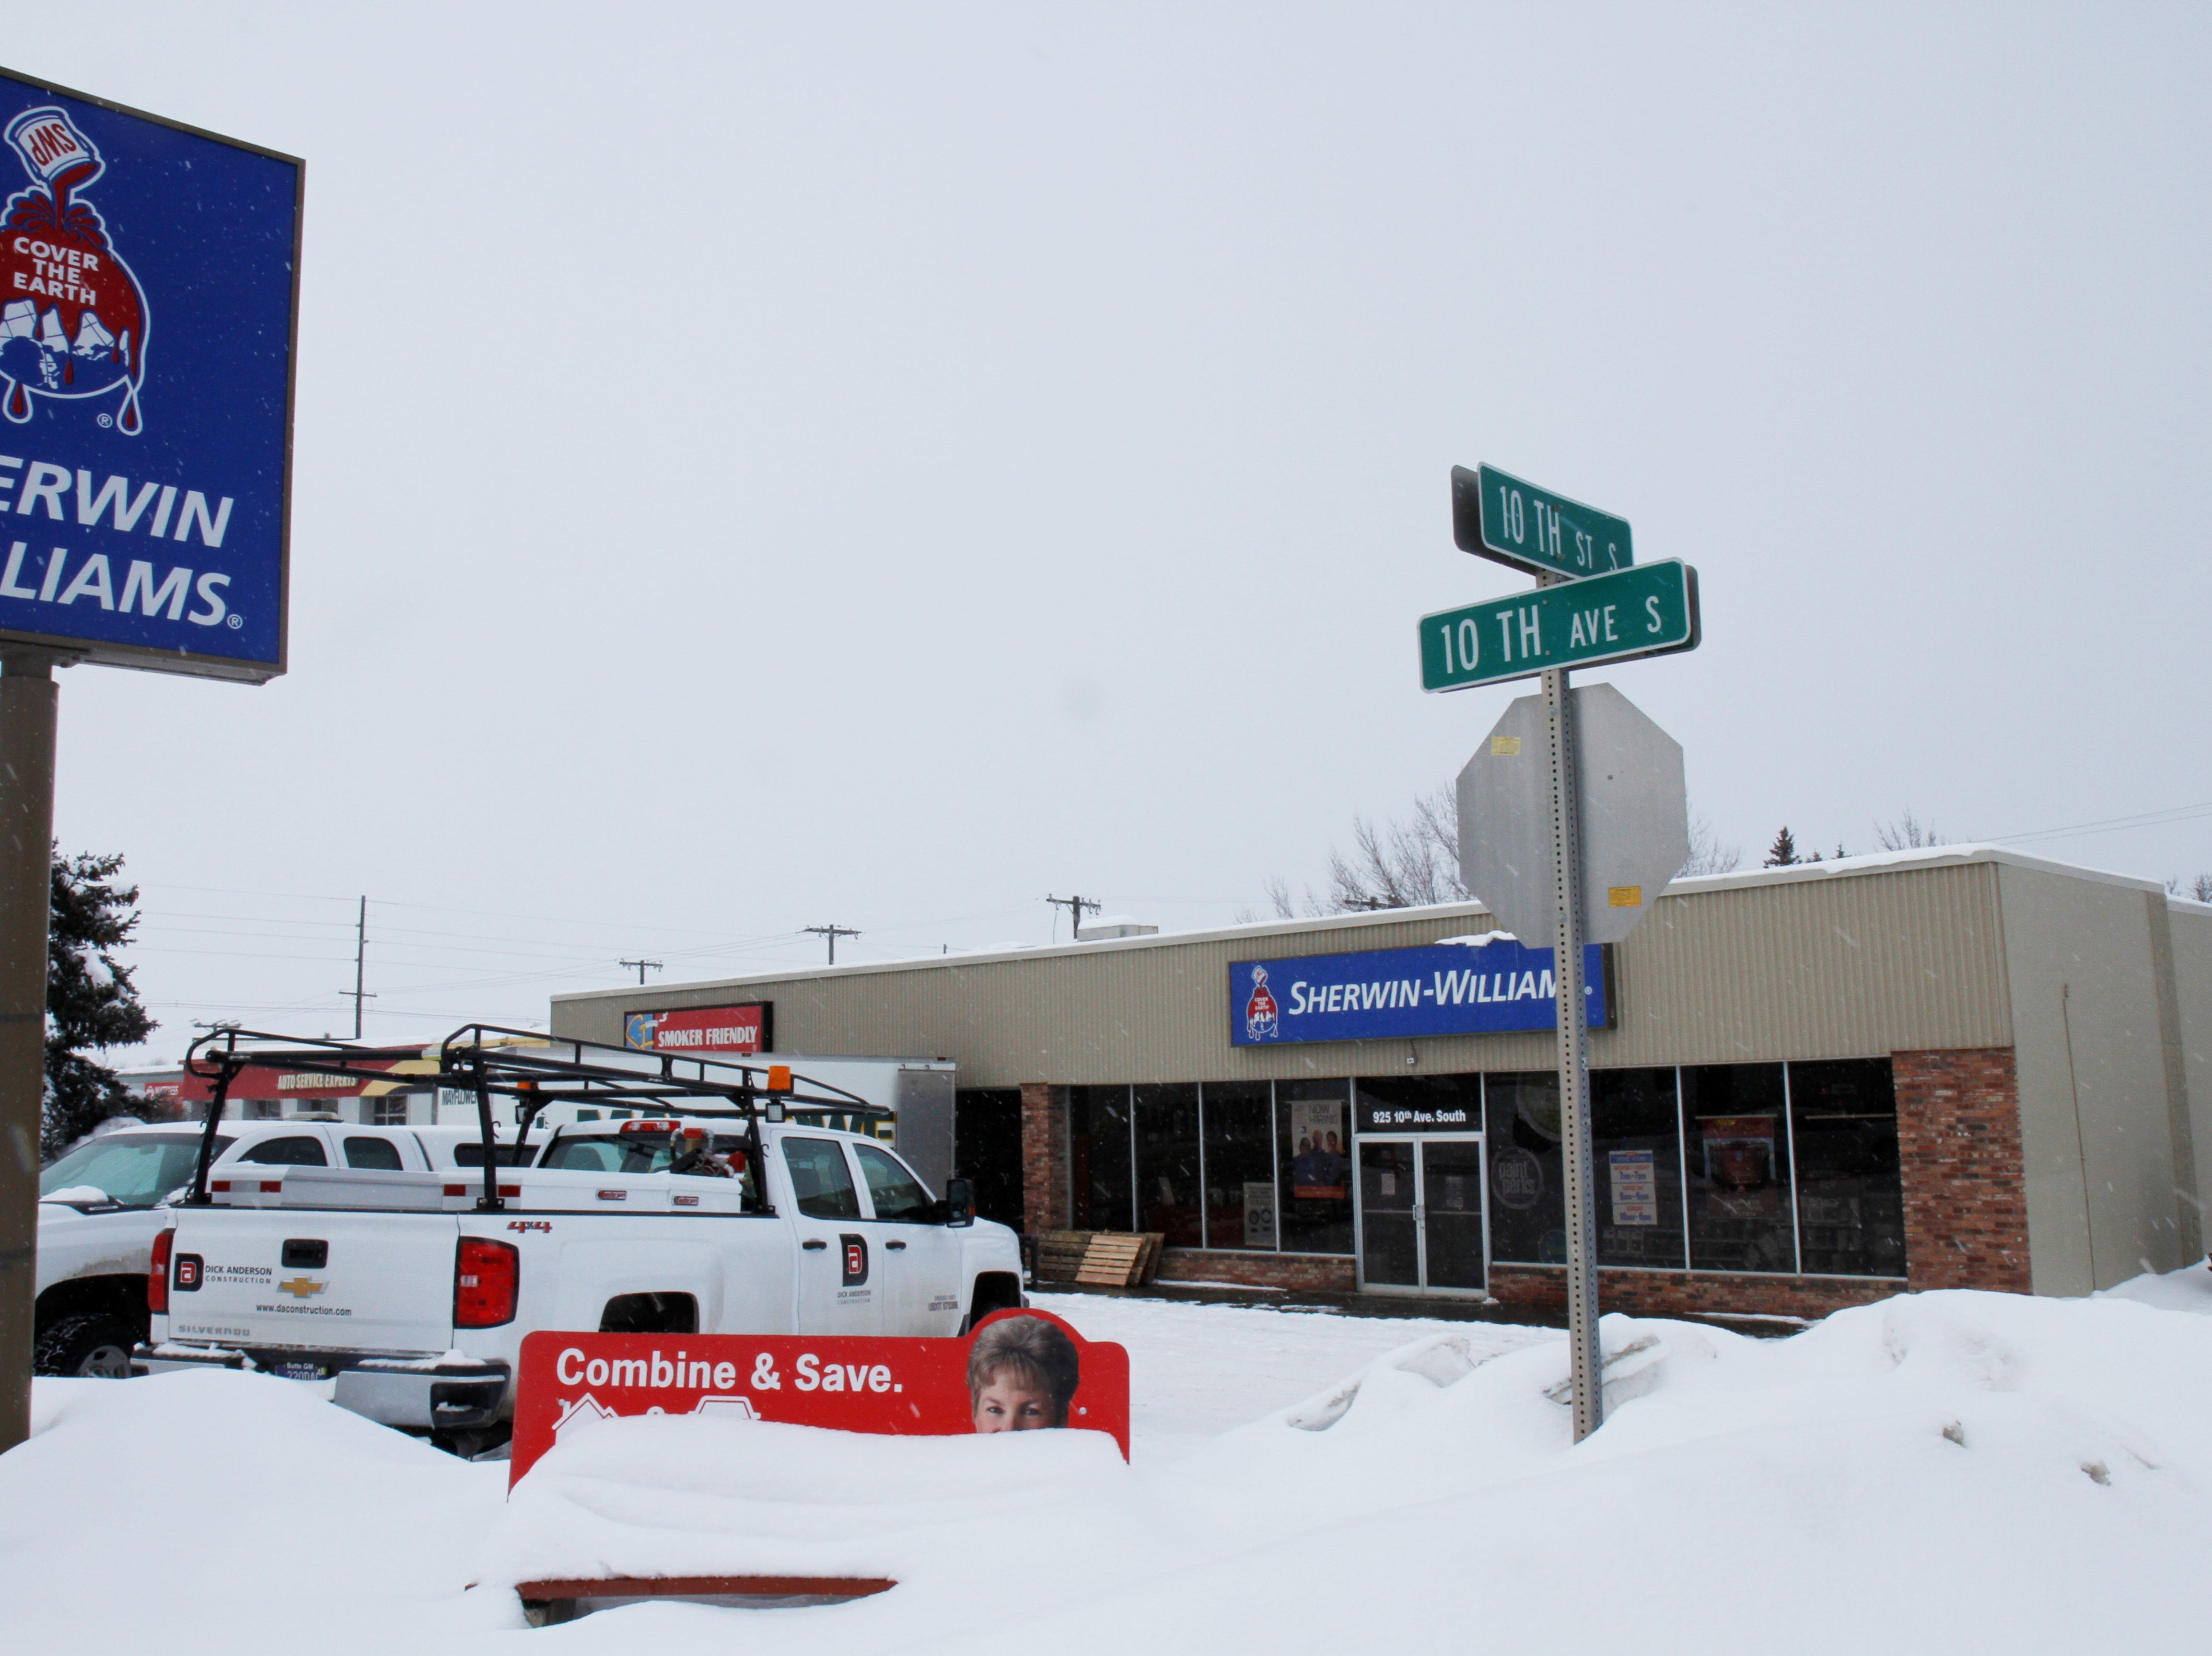 Great Falls Fire Rescue responded to the Sherwin-Williams store on 10th Avenue South for a partial roof collapse around 11 a.m.